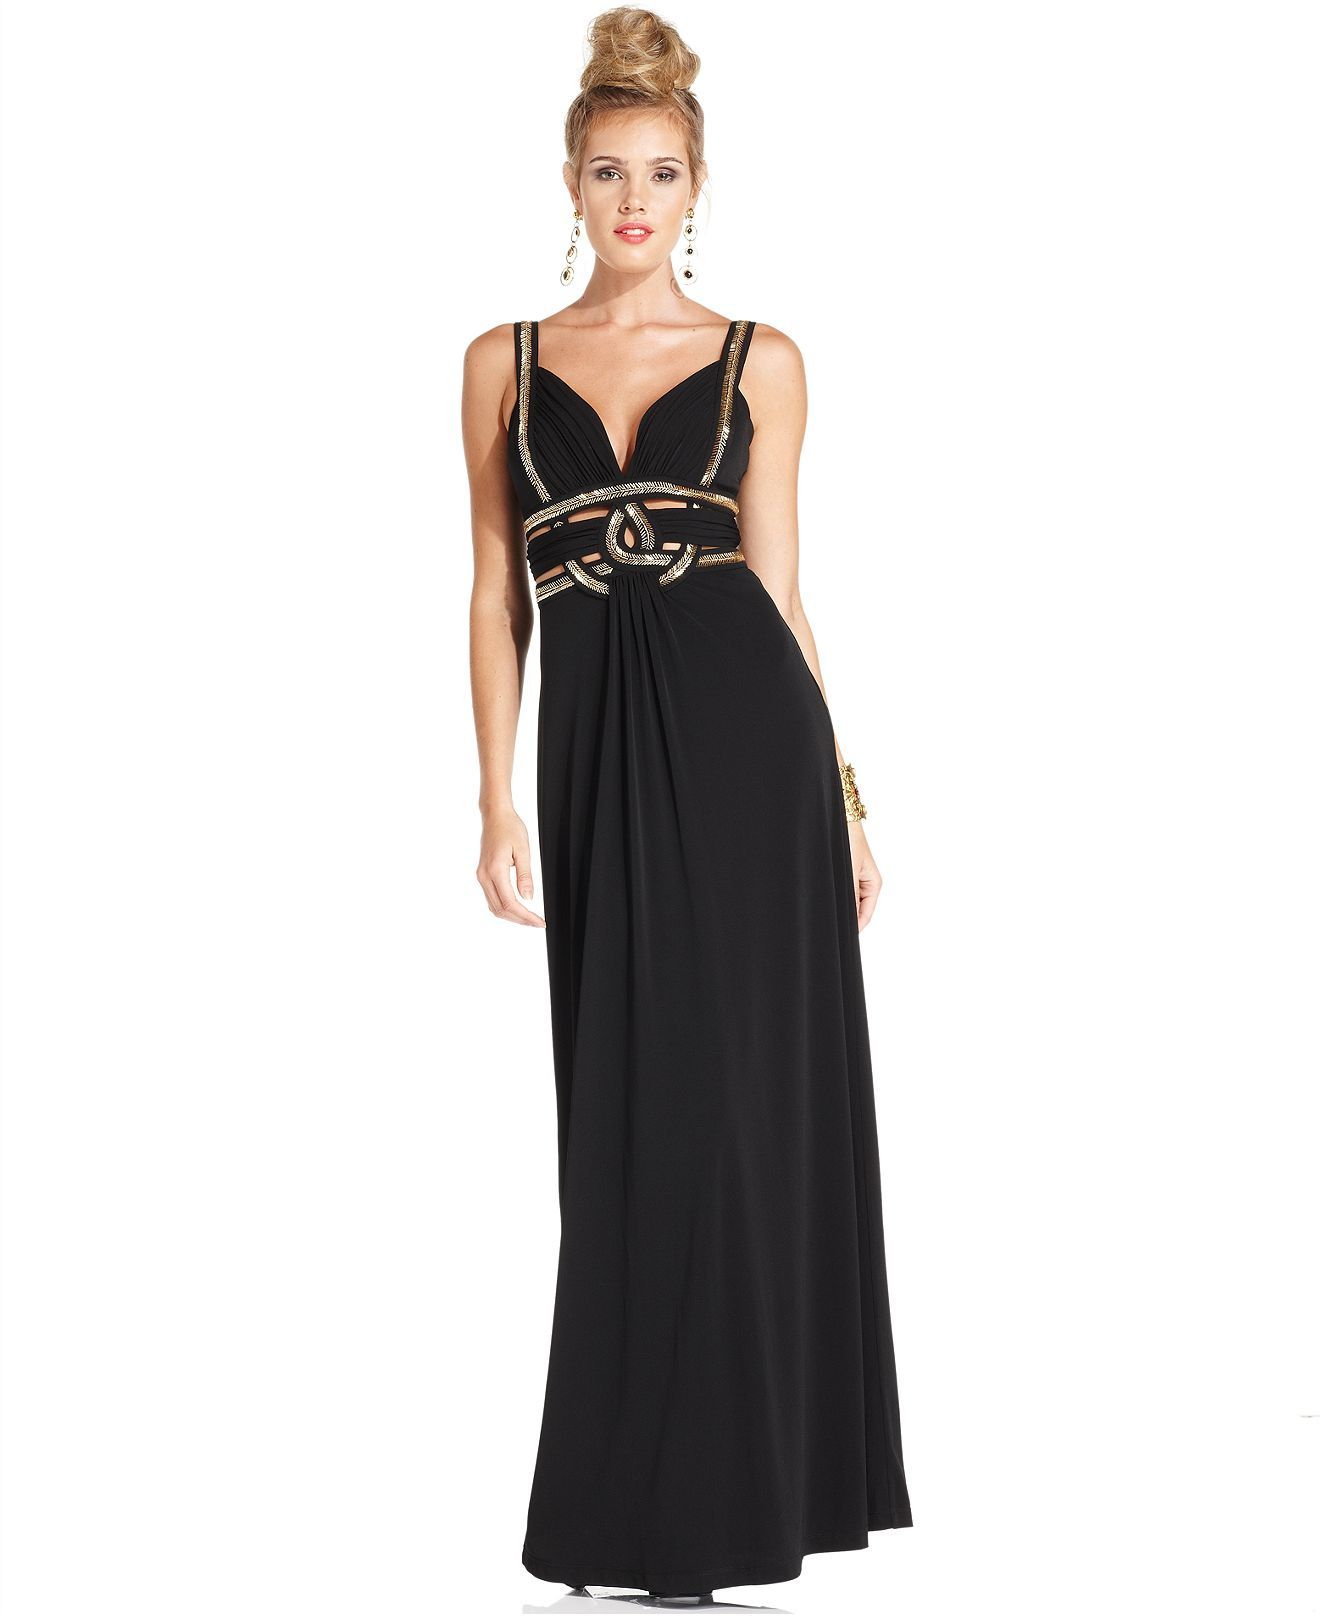 07ef04a327e4 Black Bridesmaid Dresses Macys | Saddha